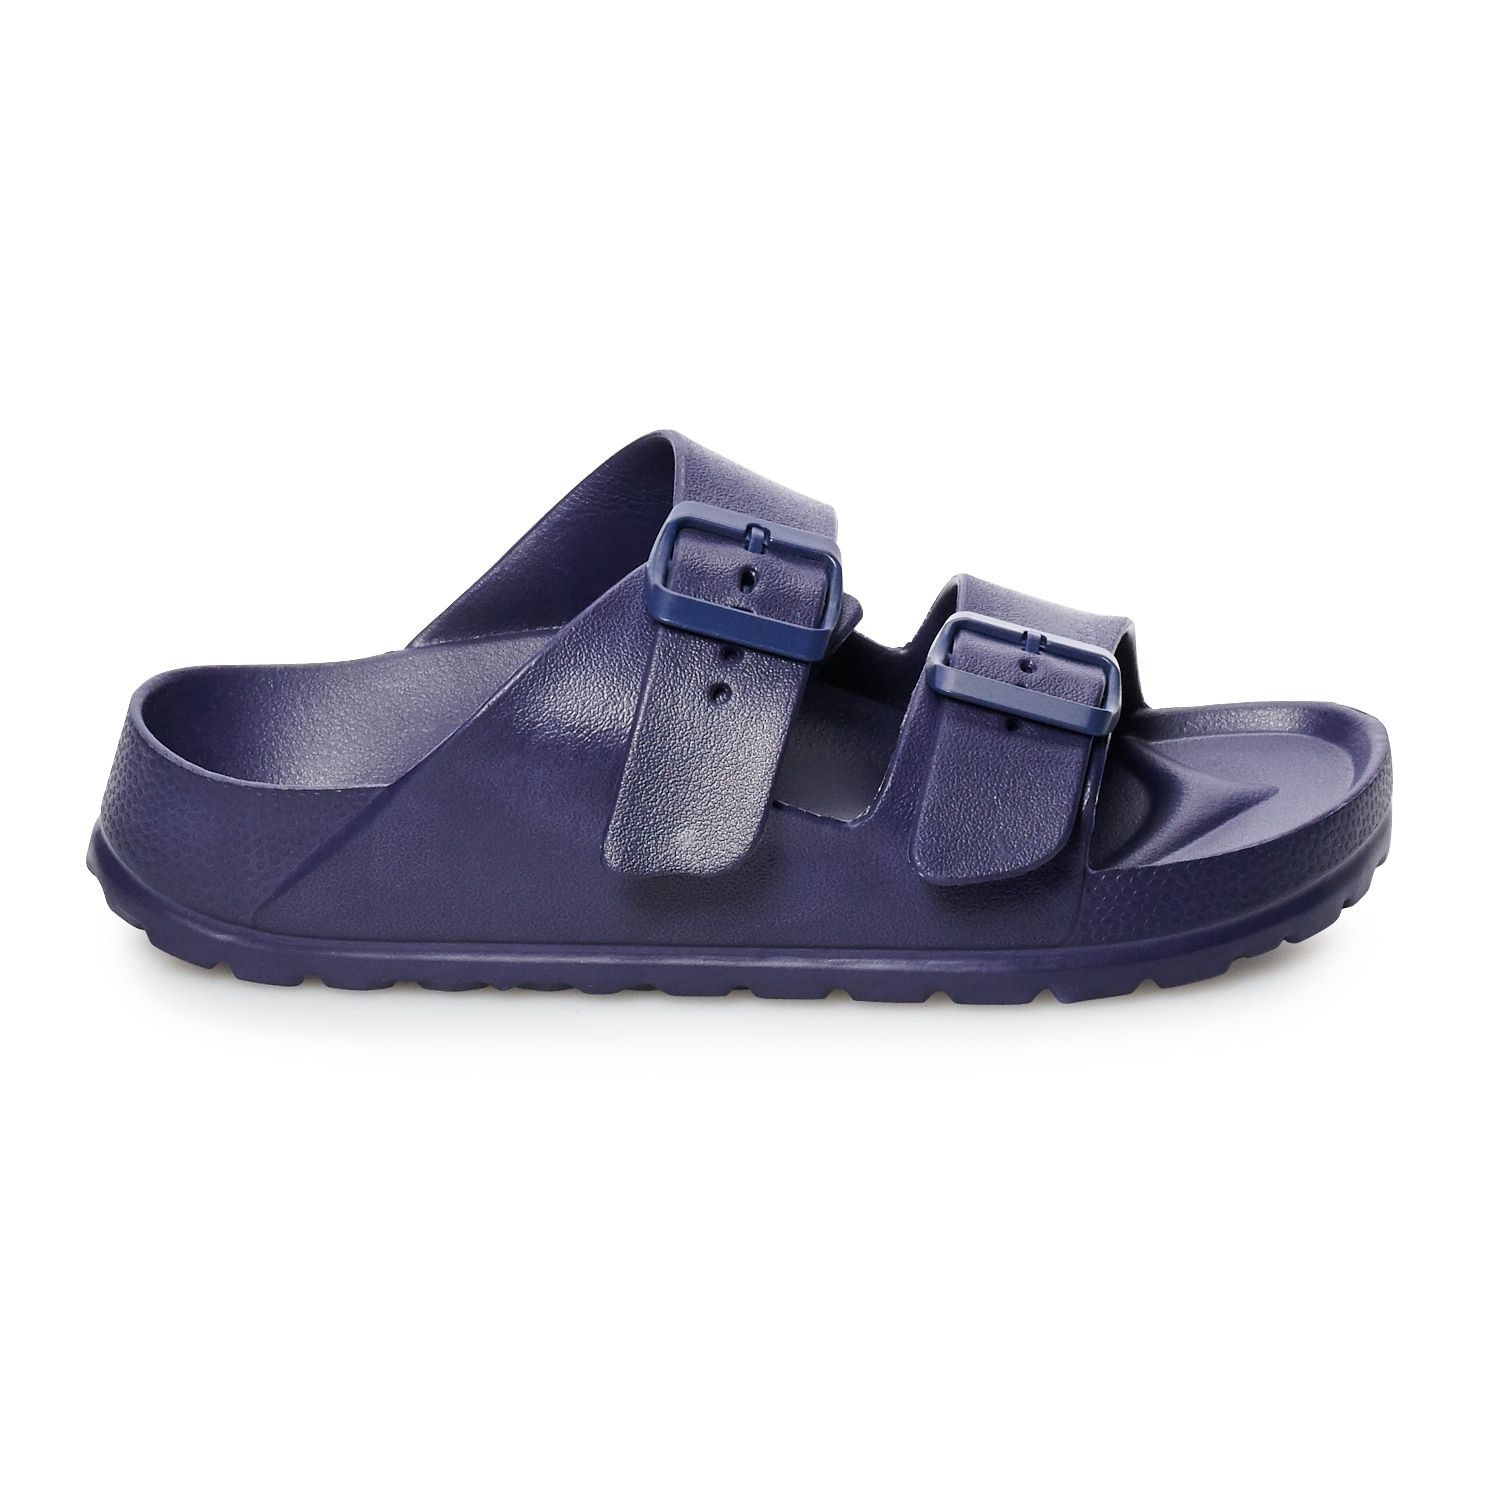 5f40d64c388 Women s Mudd  Molded Double Strap Sandals  Molded